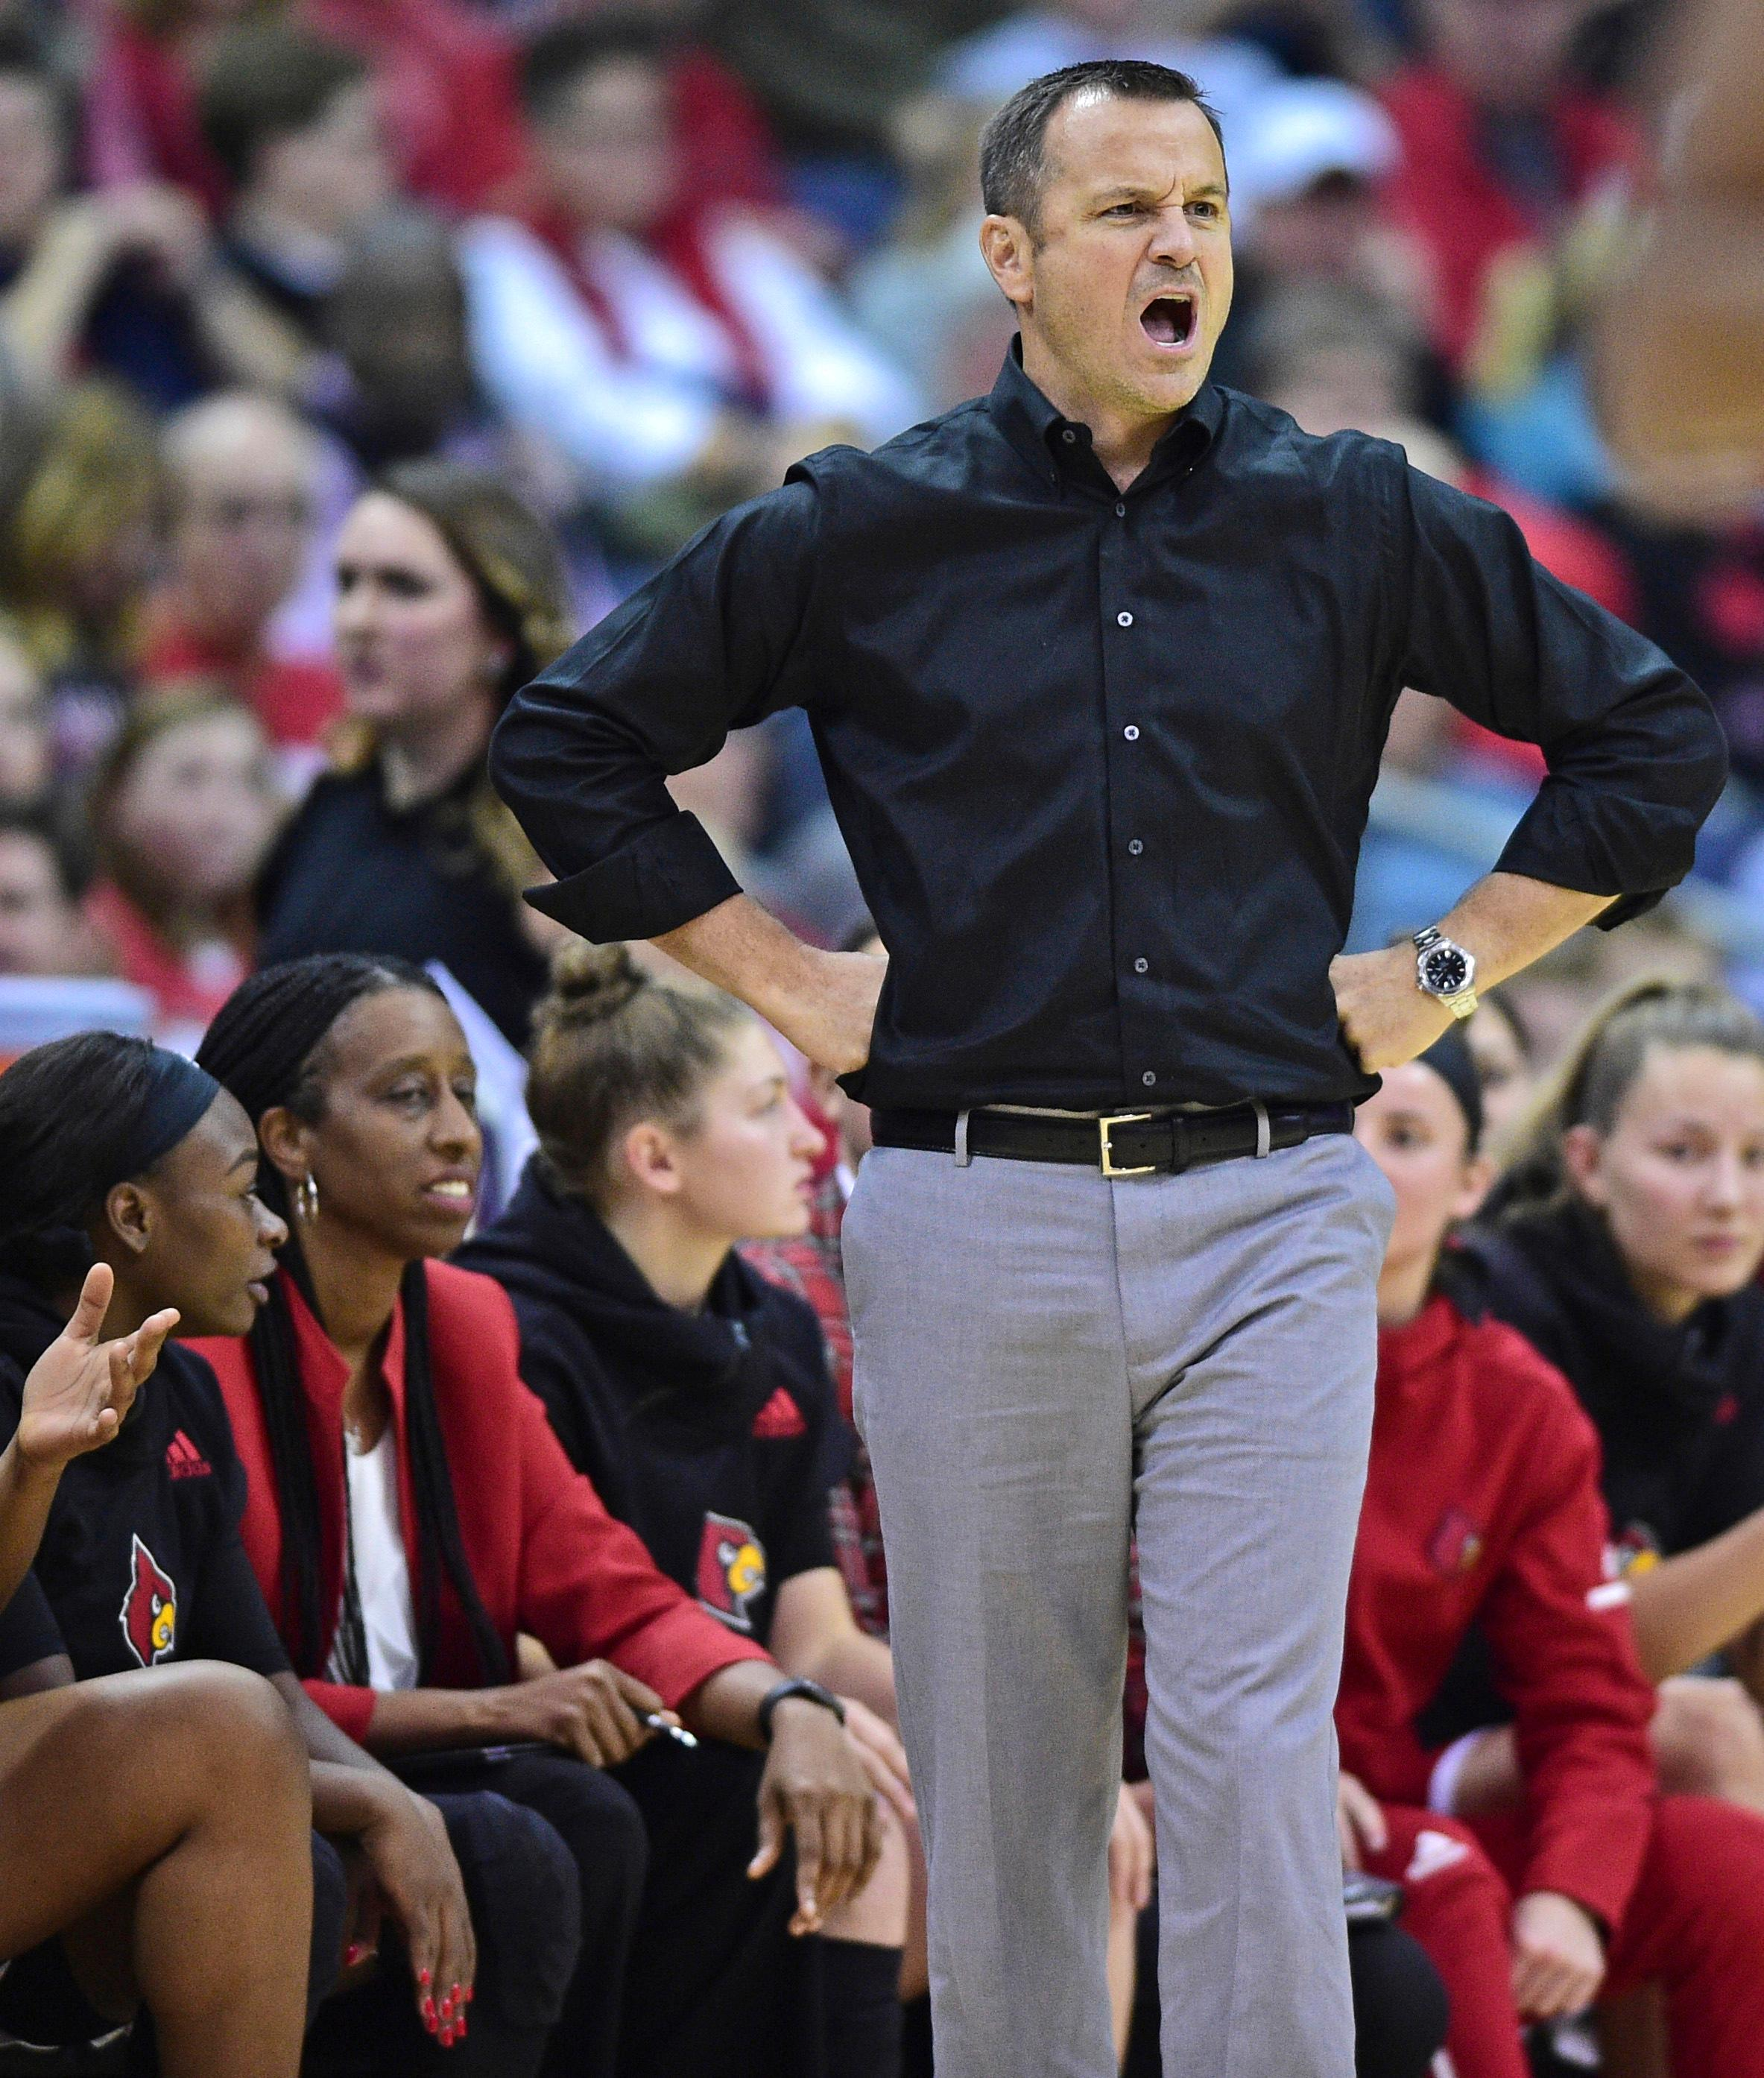 Louisville head coach Jeff Walz shouts during the first quarter of an NCAA college basketball game against Ohio State, Sunday, Nov. 12, 2017, in Columbus, Ohio. (AP Photo/David Dermer)